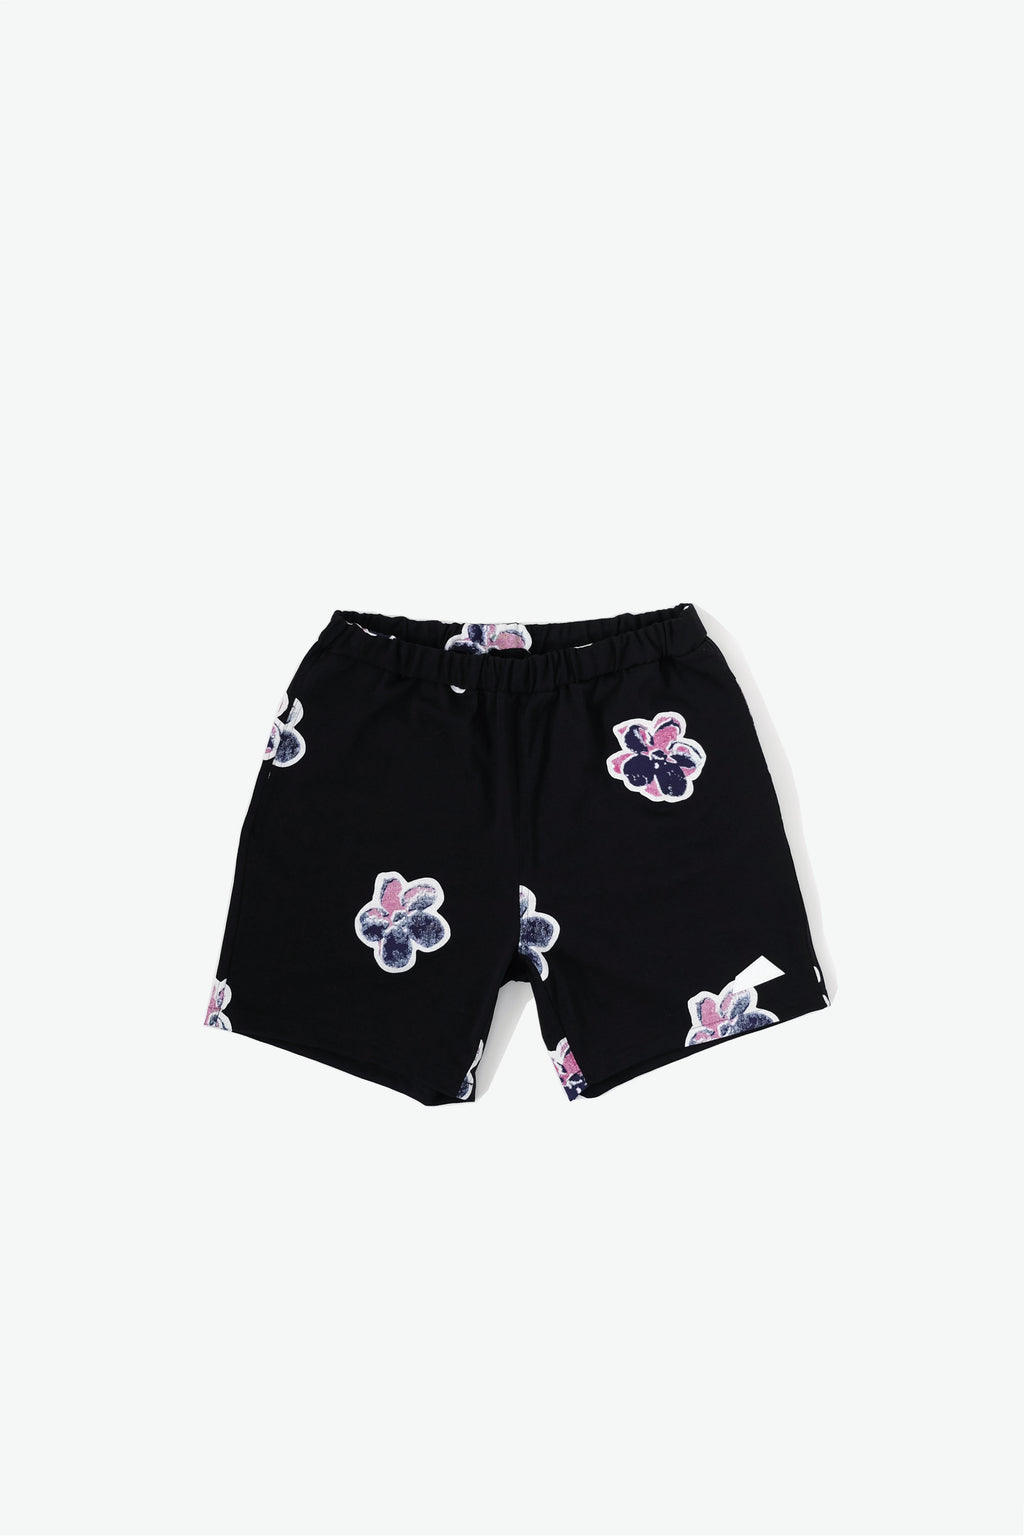 Shorts - Regatta Sweat Short - Pua